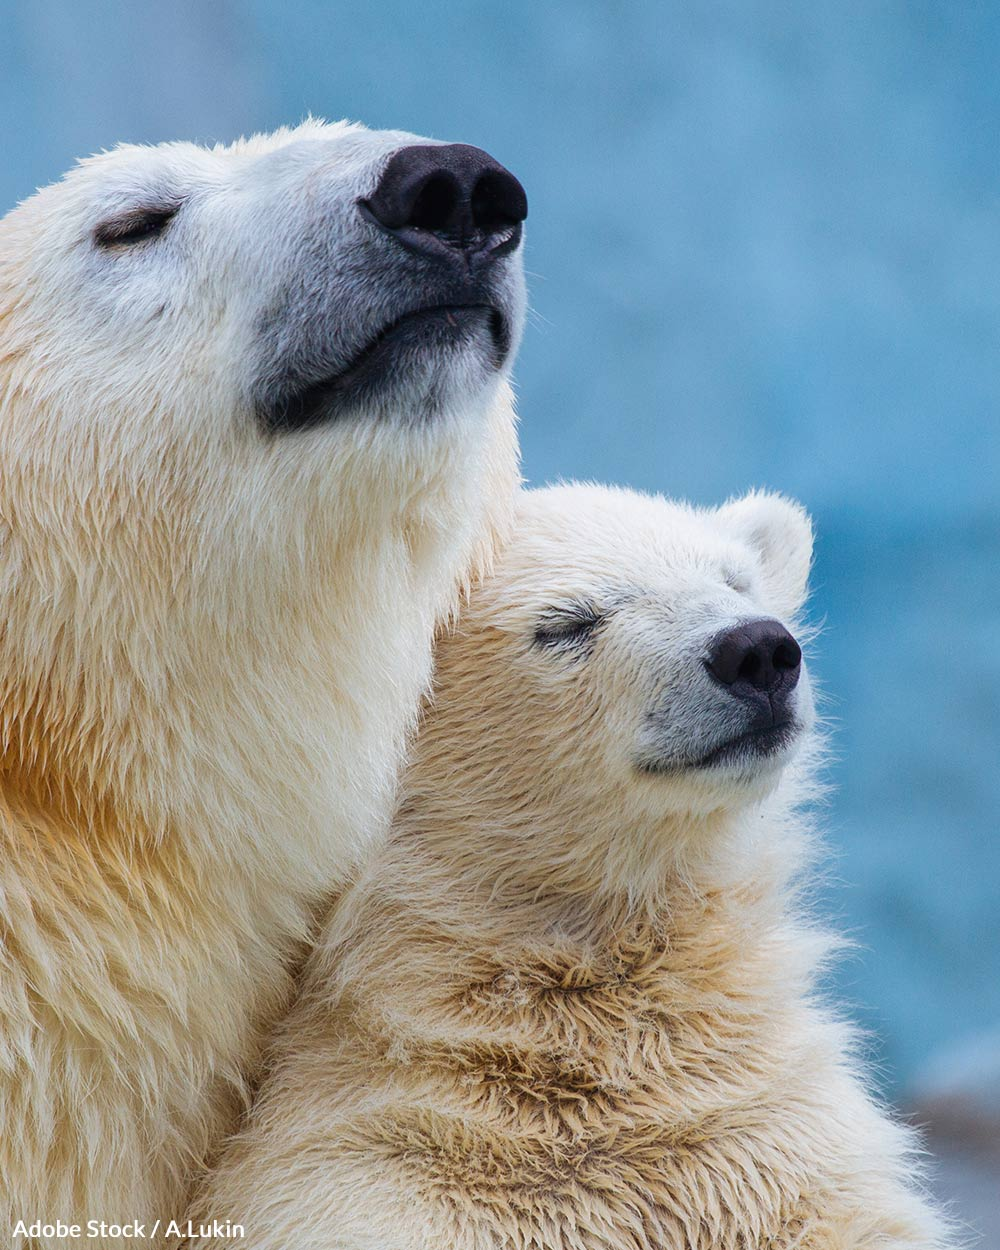 Some studies predict polar bears could go extinct by 2100.